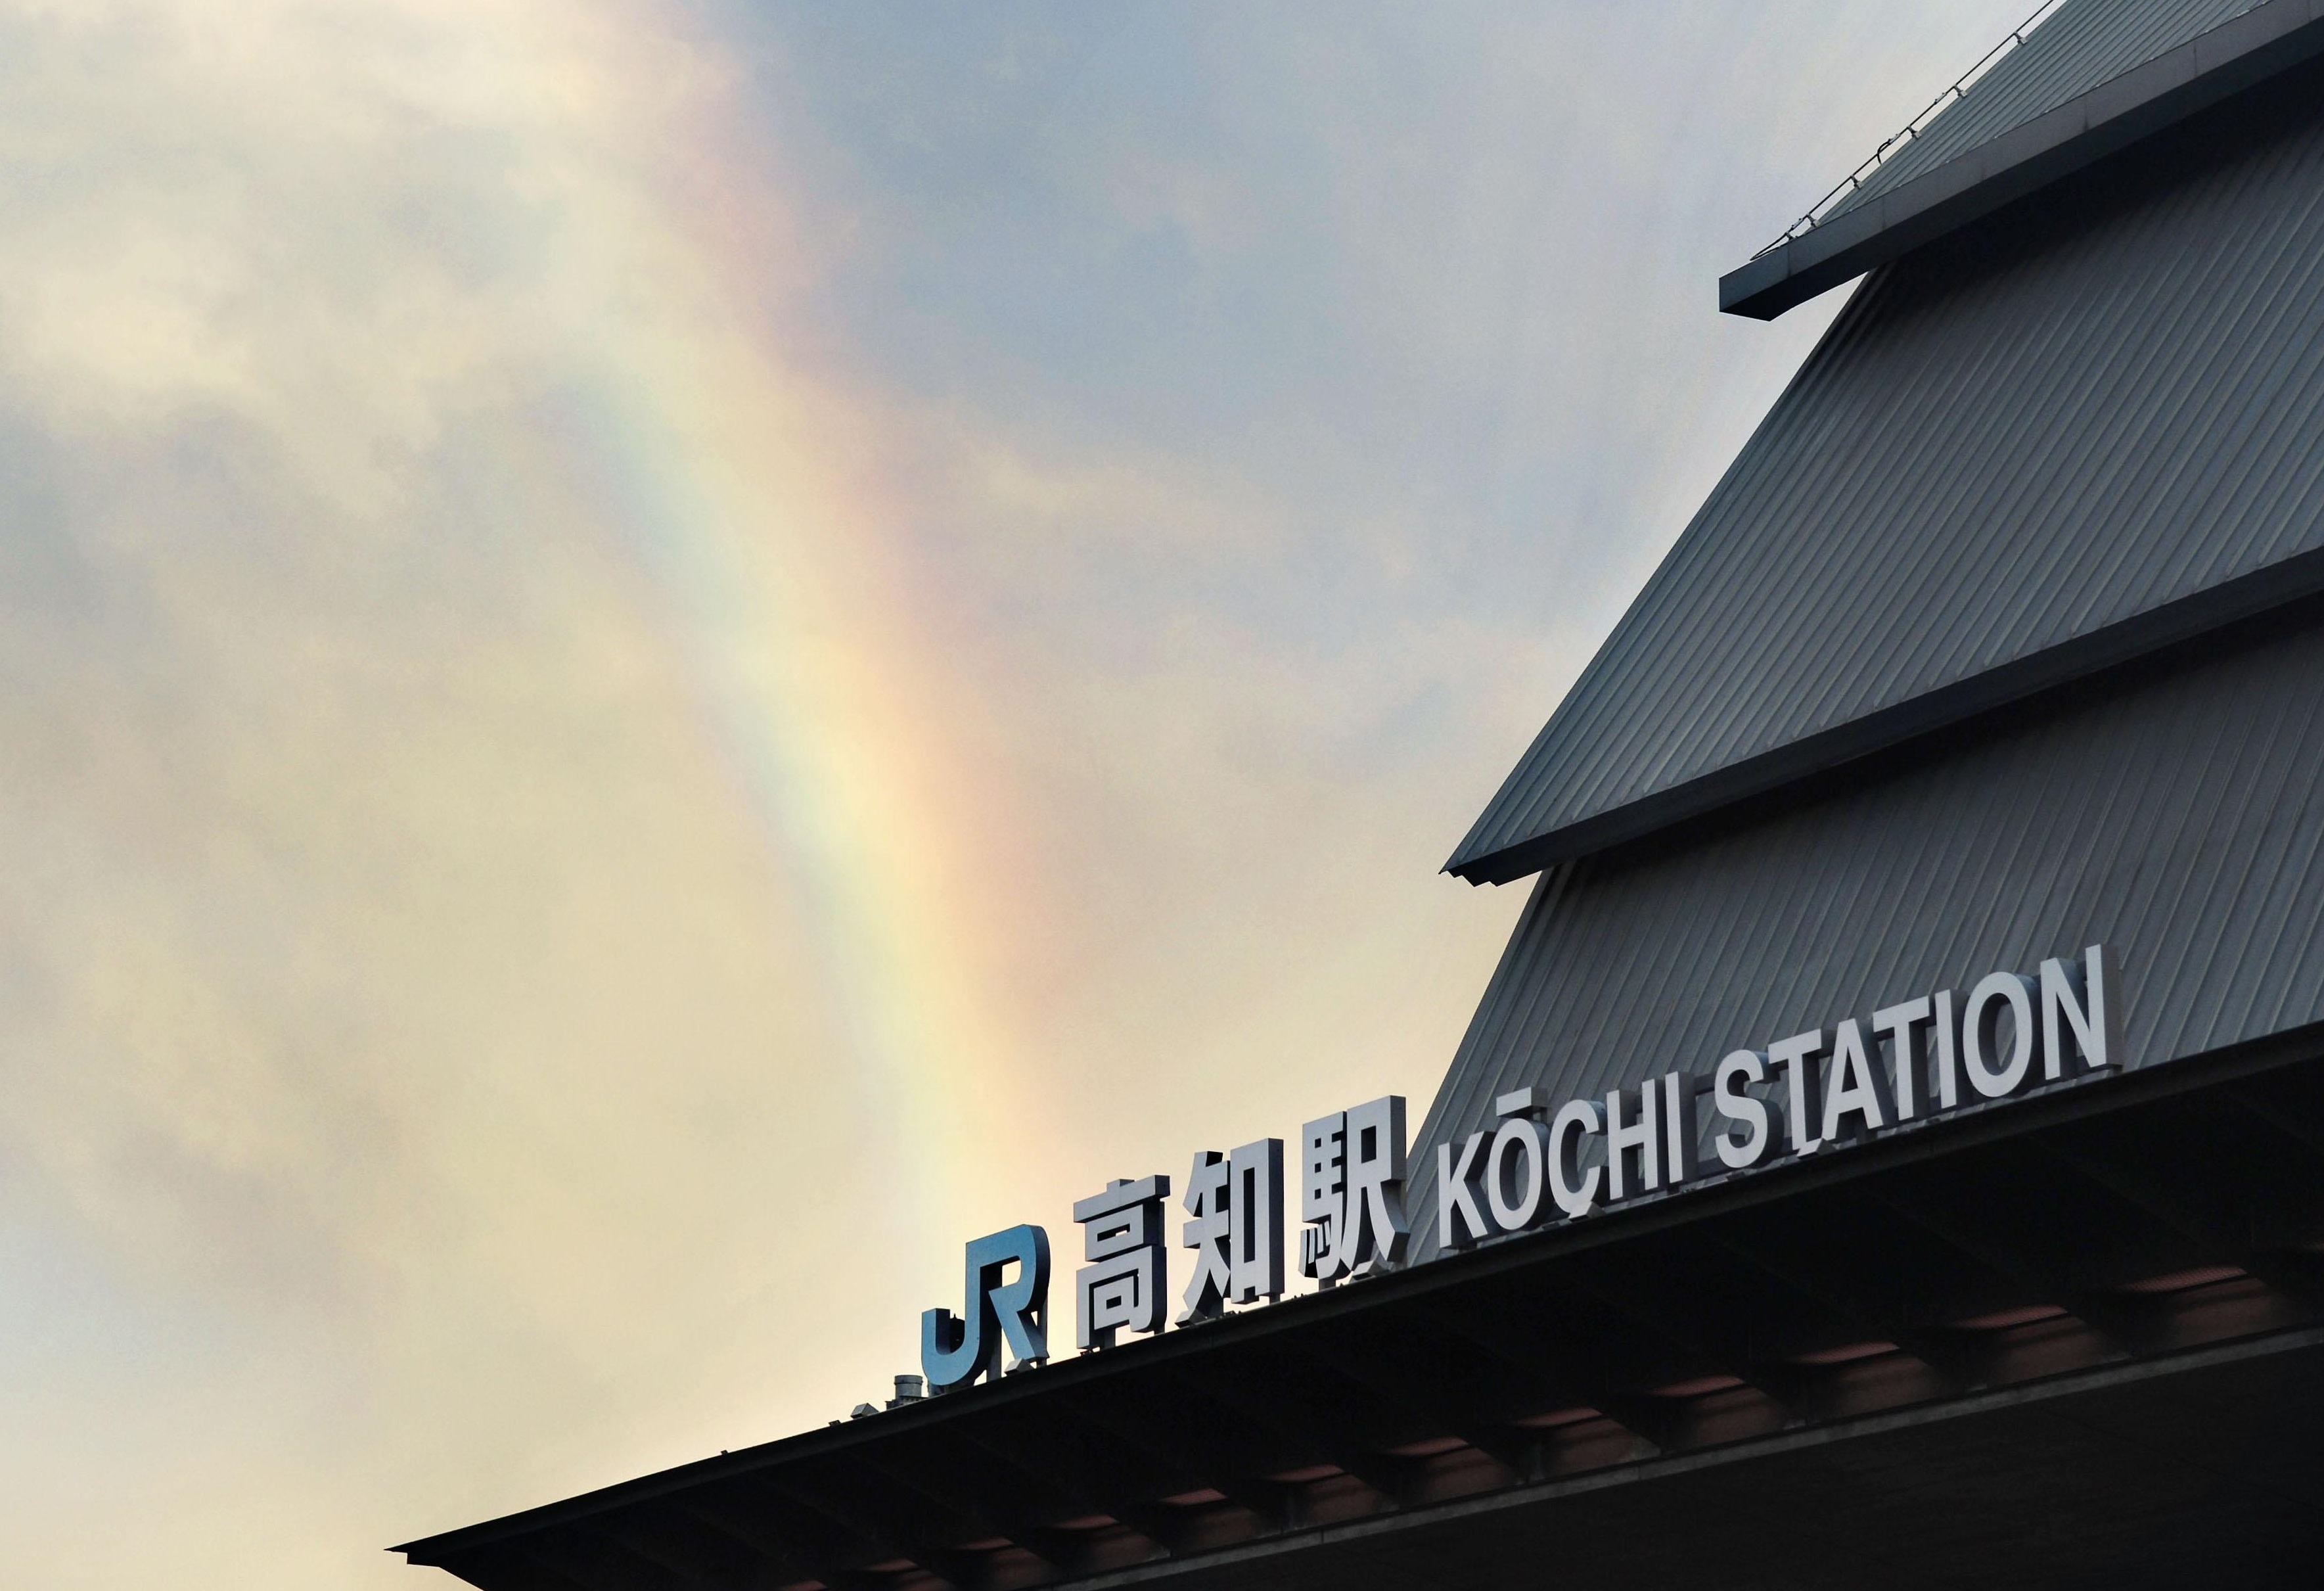 A rainbow appears over JR Kochi Station Monday afternoon when Kochi was in the eye of Typhoon Vongfong. The season's 19th typhoon swept through Honshu toward the Pacific Tuesday morning. | KYODO